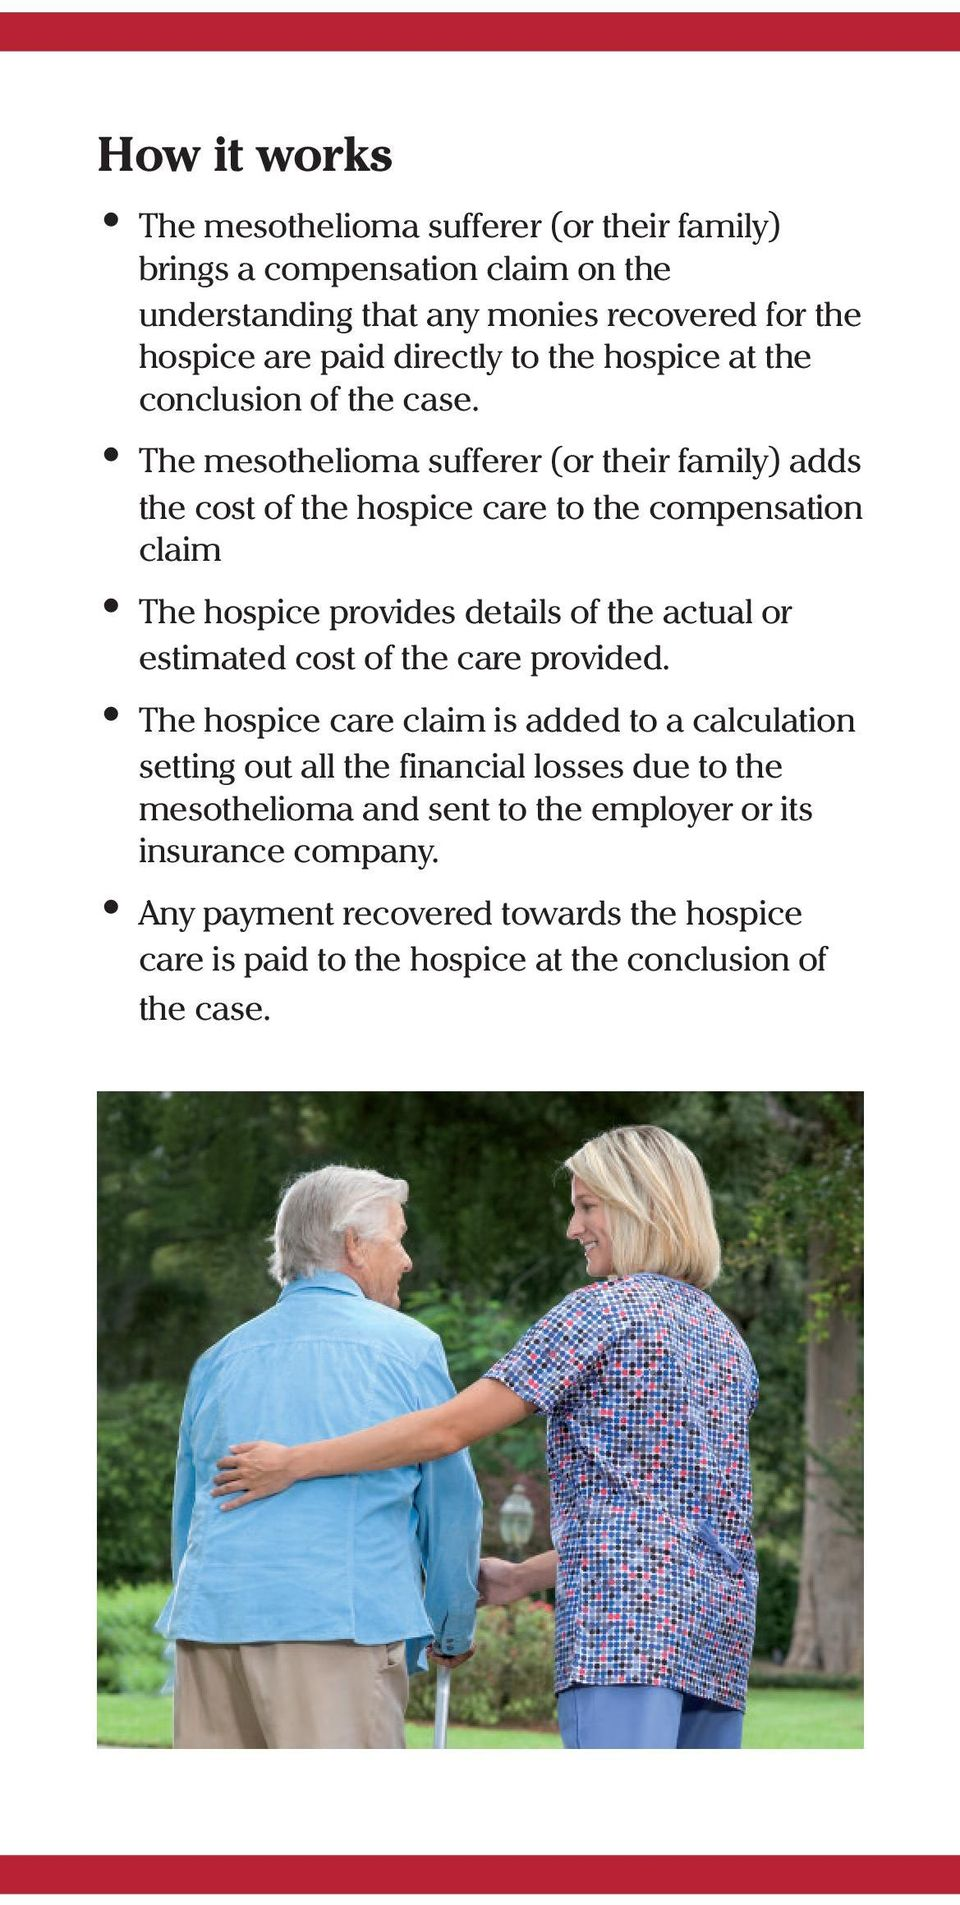 The mesothelioma sufferer (or their family) adds the cost of the hospice care to the compensation claim The hospice provides details of the actual or estimated cost